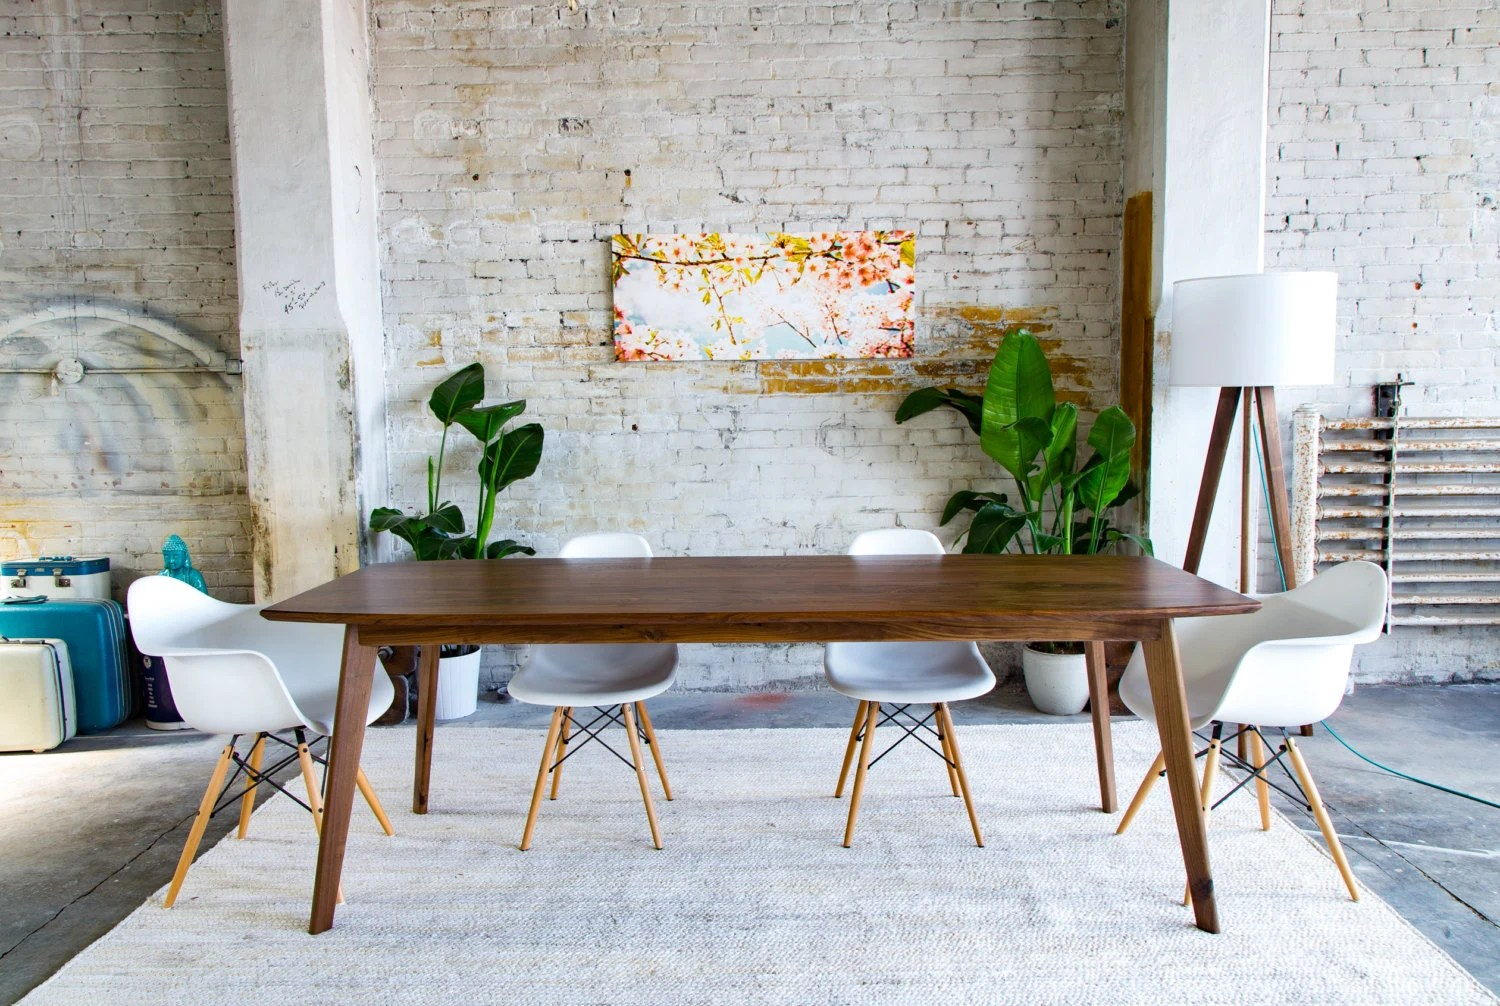 Small Dining Table Mid Century Modern Dining Table Walnut Dining Table Mid Century Dining Table Small Dining Table